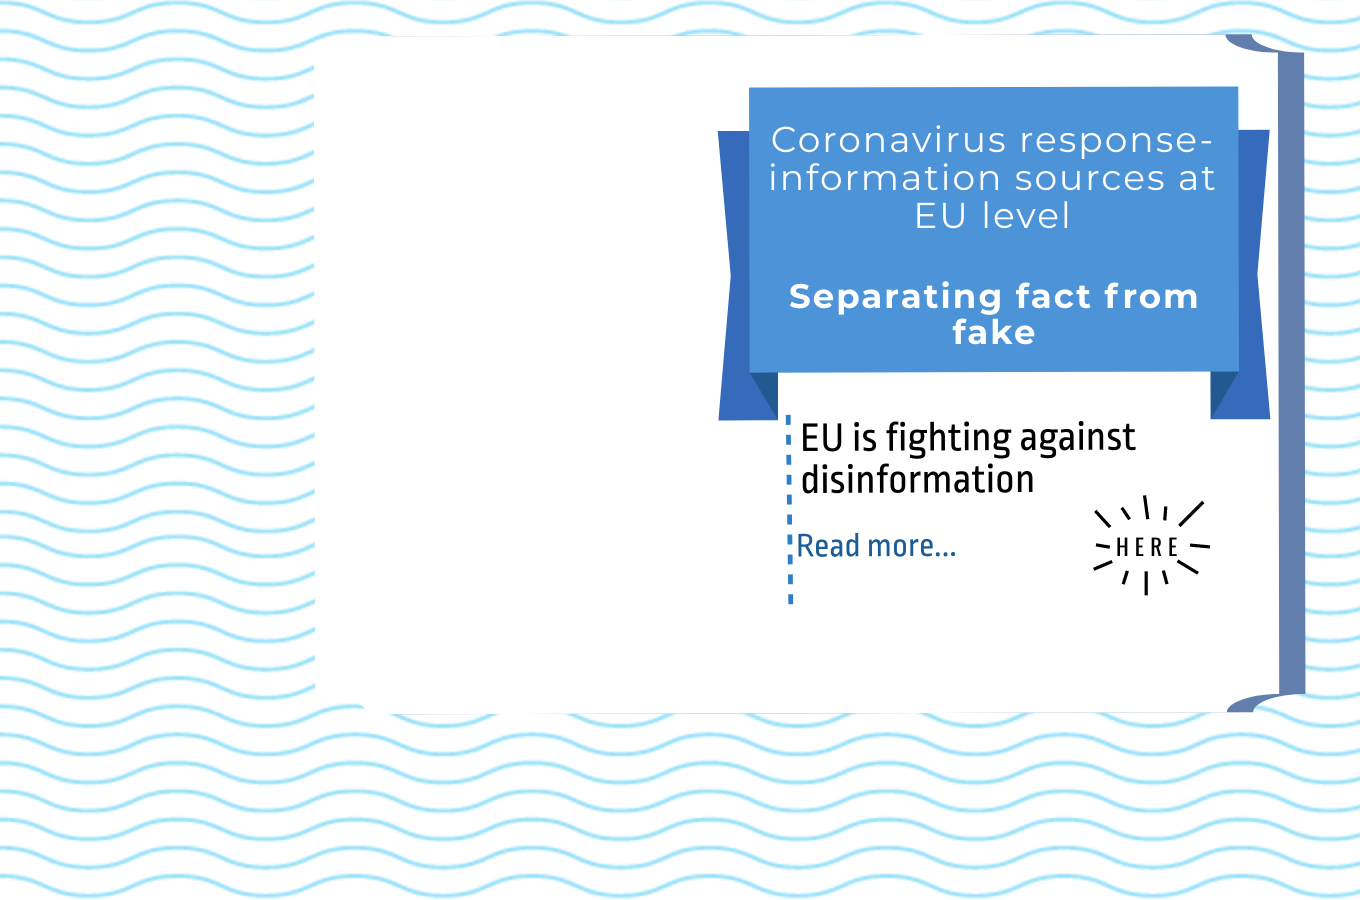 EU is fighting against disinformation